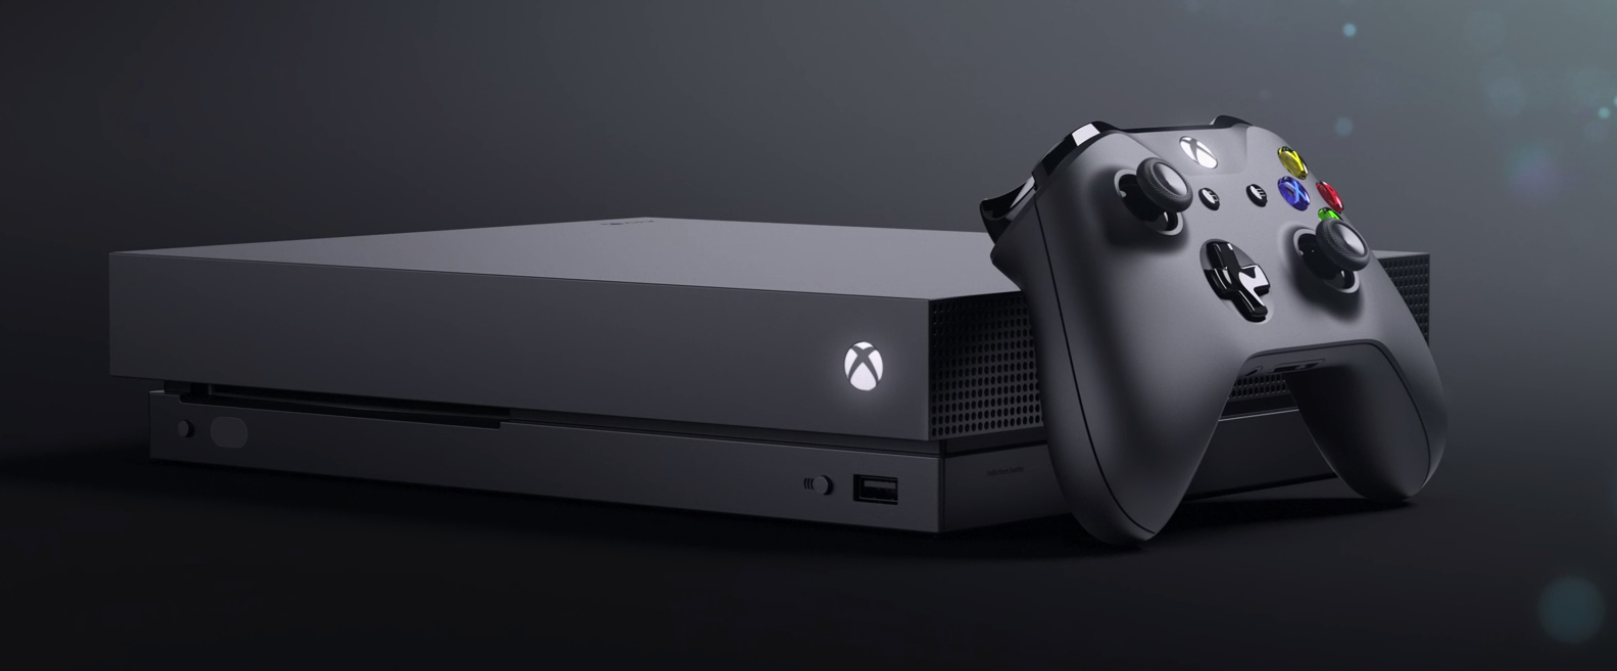 day one edition xbox one x